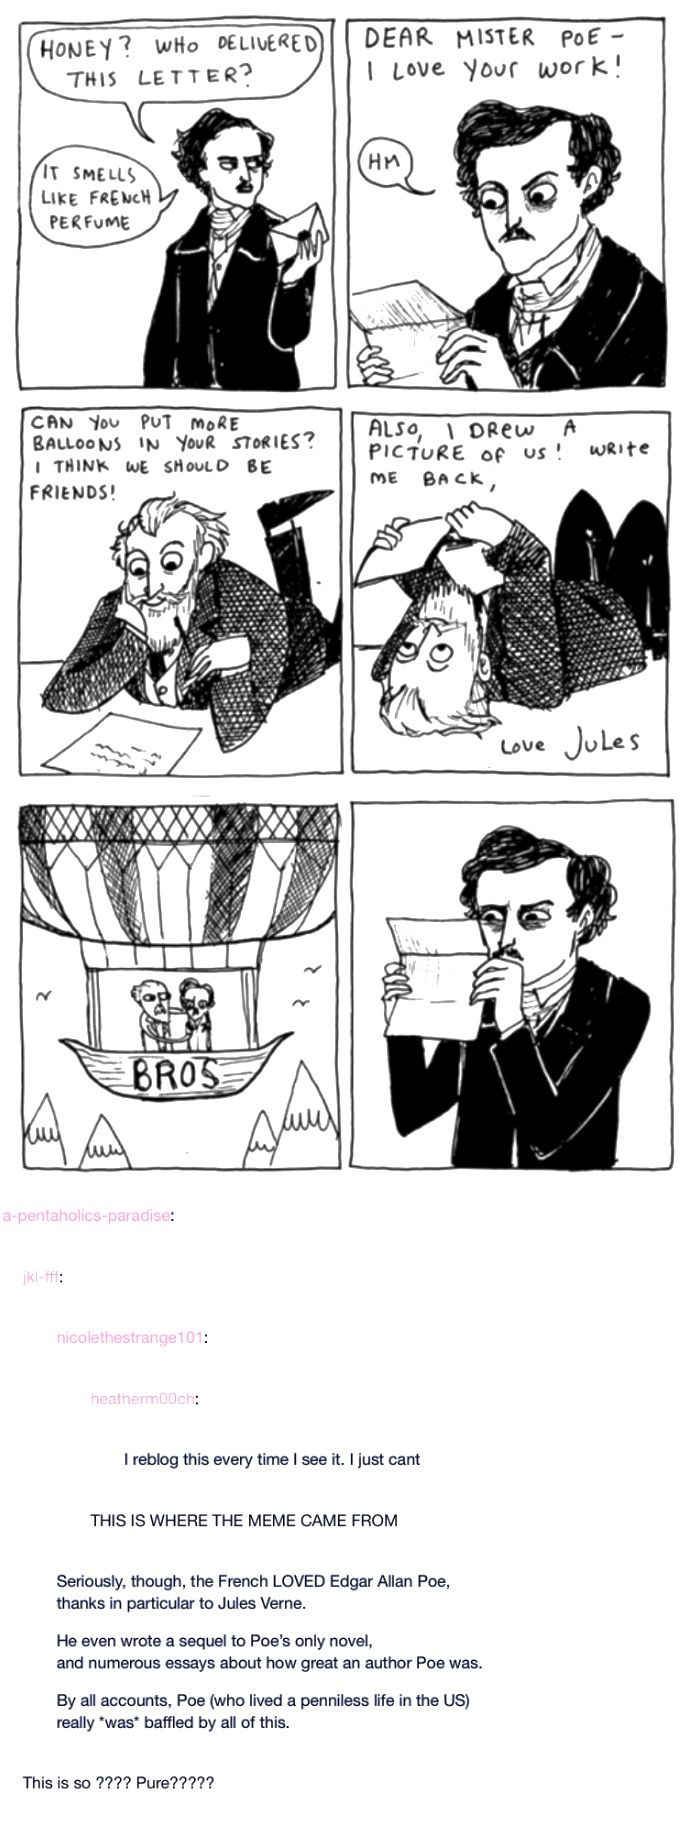 6735049729fe65c5054ff2e880a66f4c pin by annie ogren on sunshine pinterest comic, count and history,Funny History Meme Comics